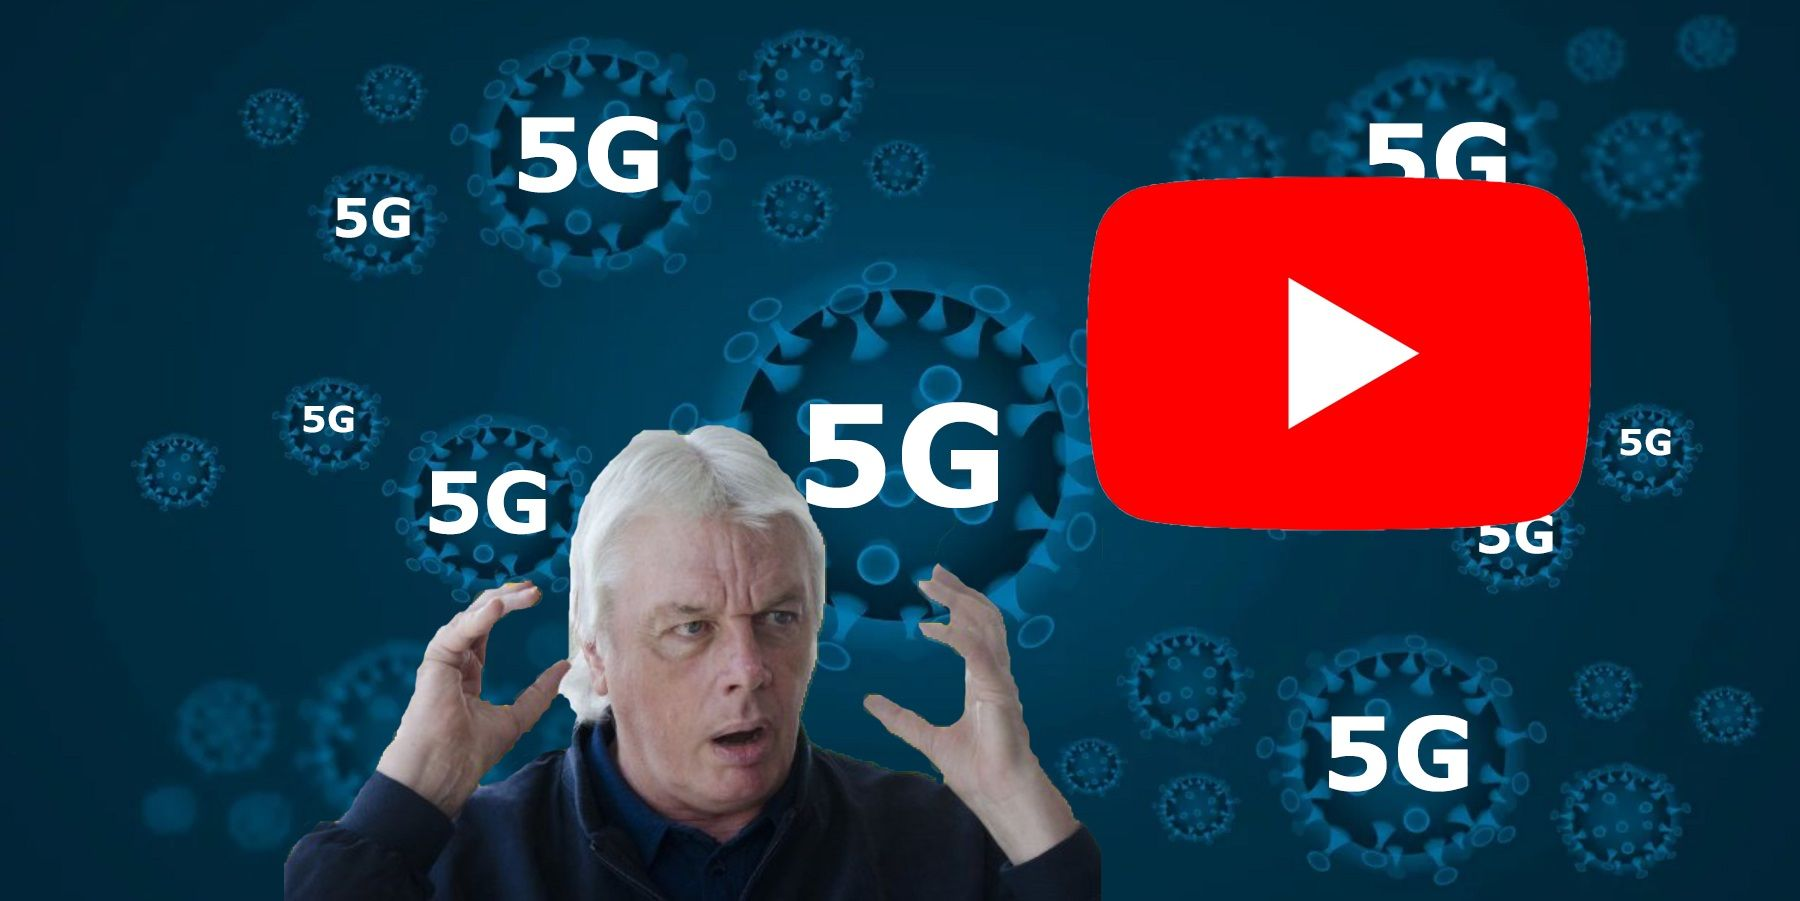 YouTube, David Icke Channel Deletion, & 5G Caused COVID-19 ...